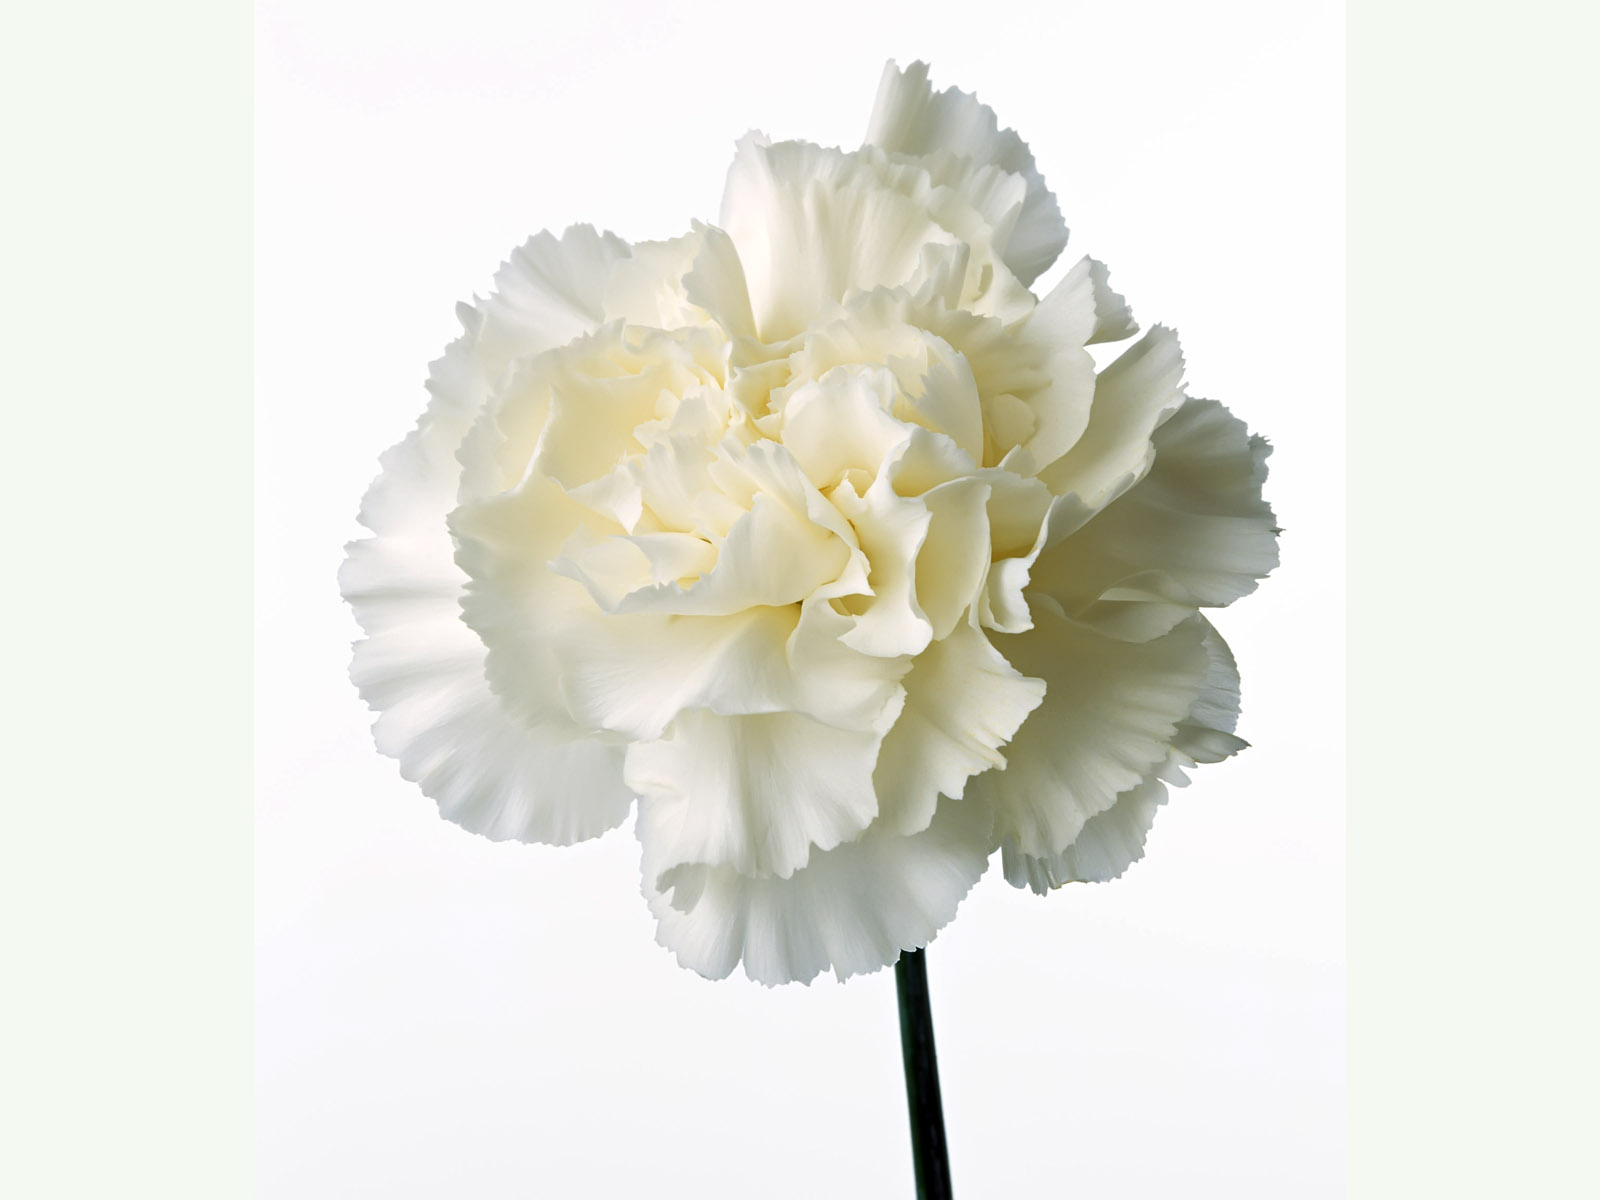 Carnation flowers 4634